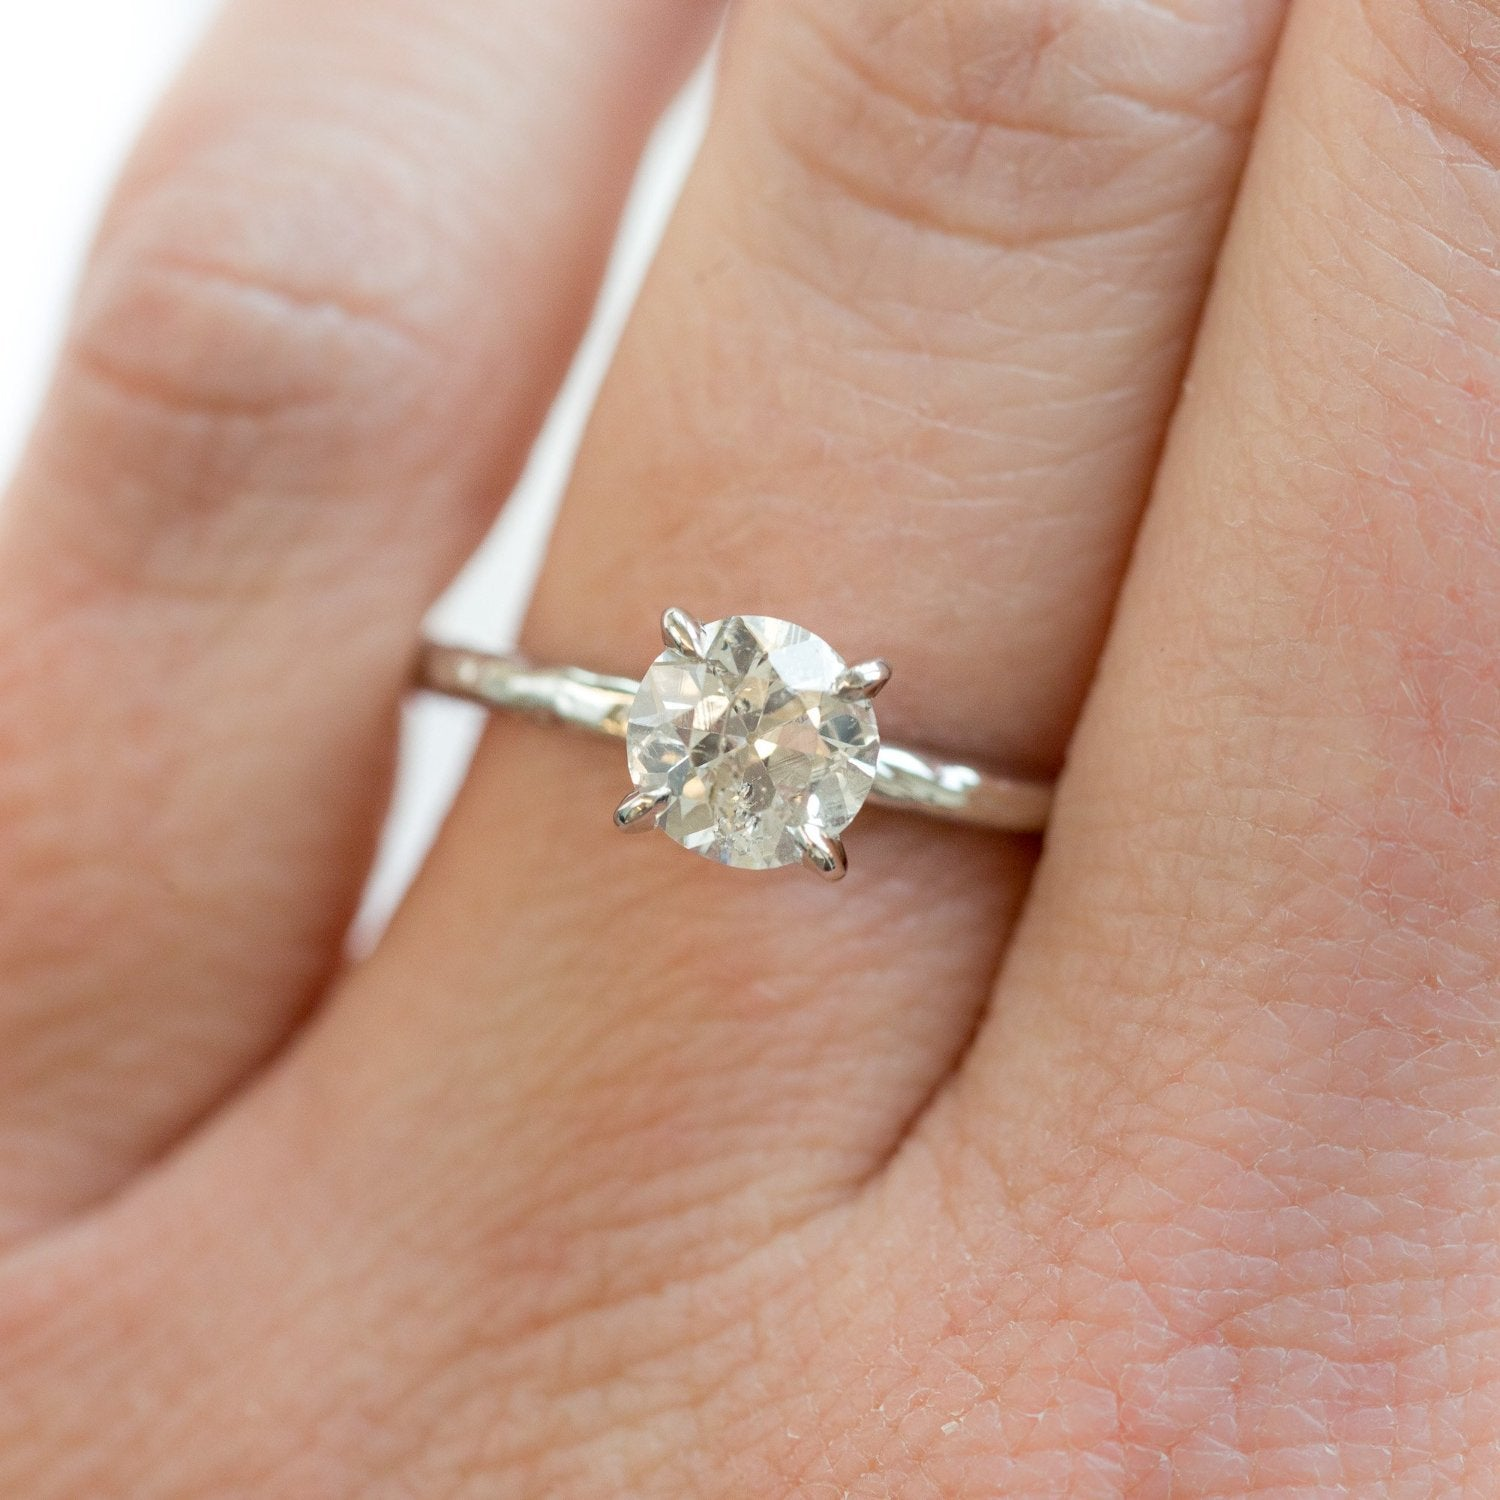 1e026c78d33 1.01ct Old European Cut Diamond Hand Carved Solitaire Engagement Ring -  White Gold Round Solitaire